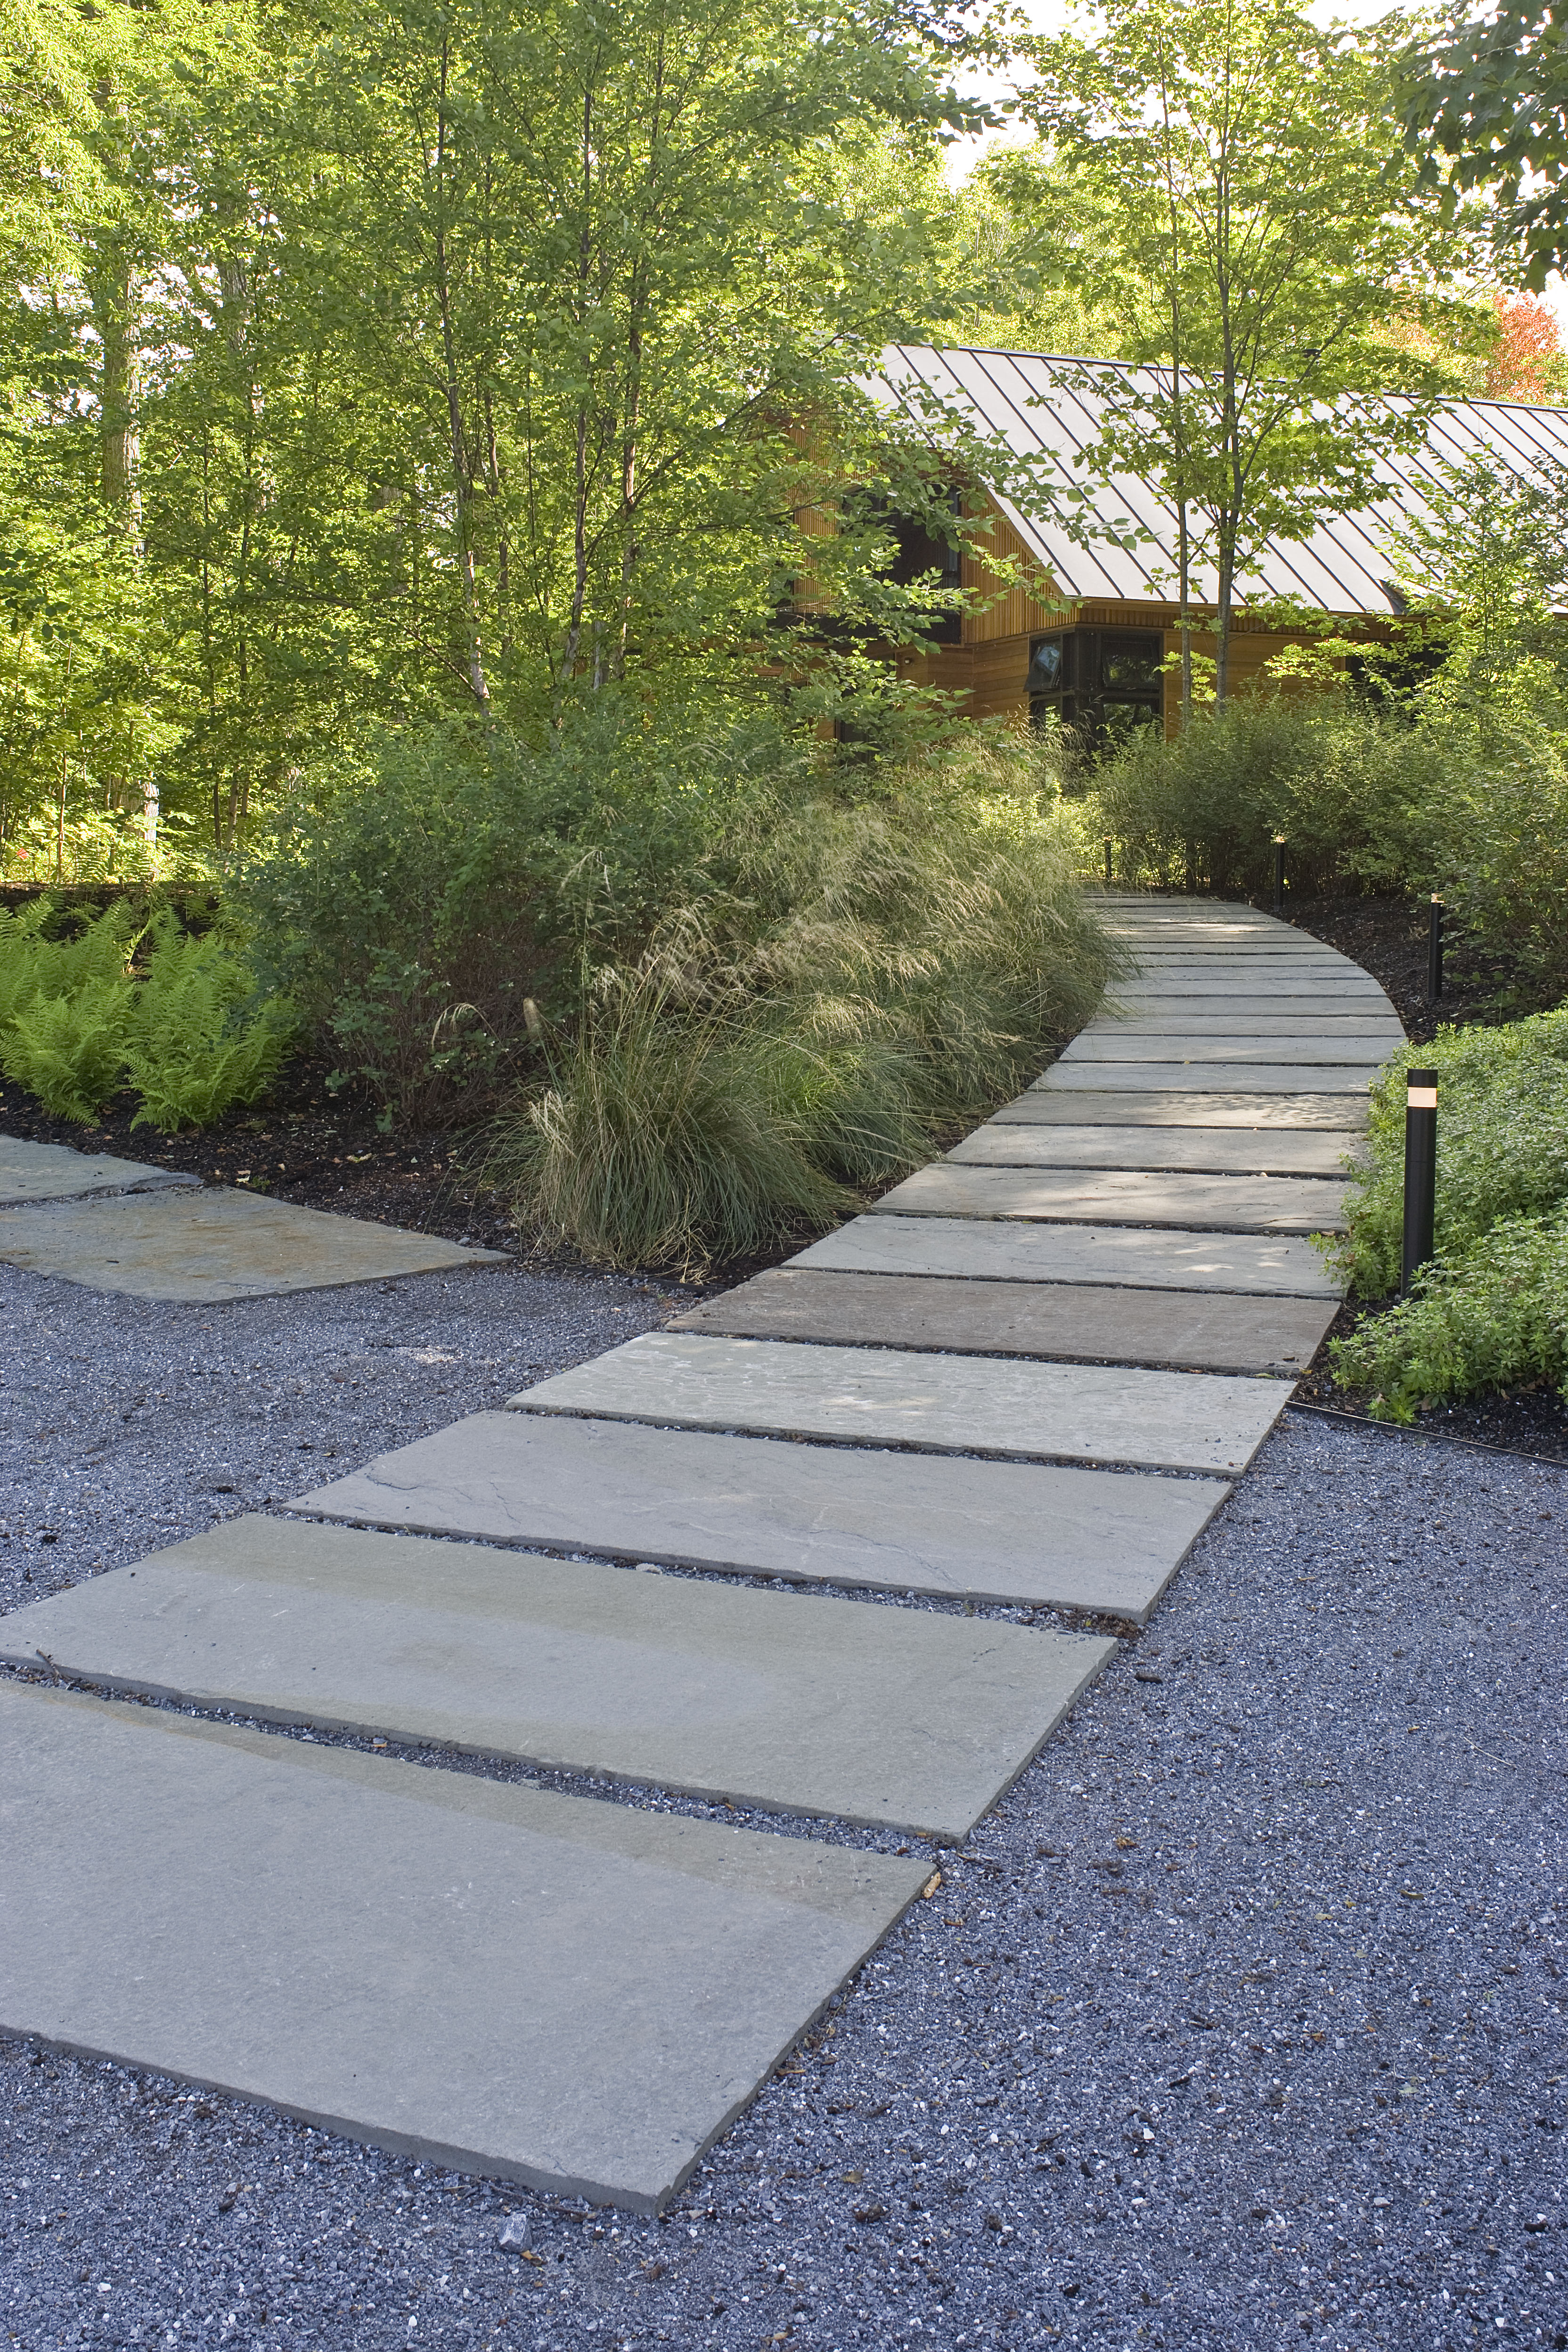 ASLA 2012 Professional Awards | Quaker Smith Point Residence